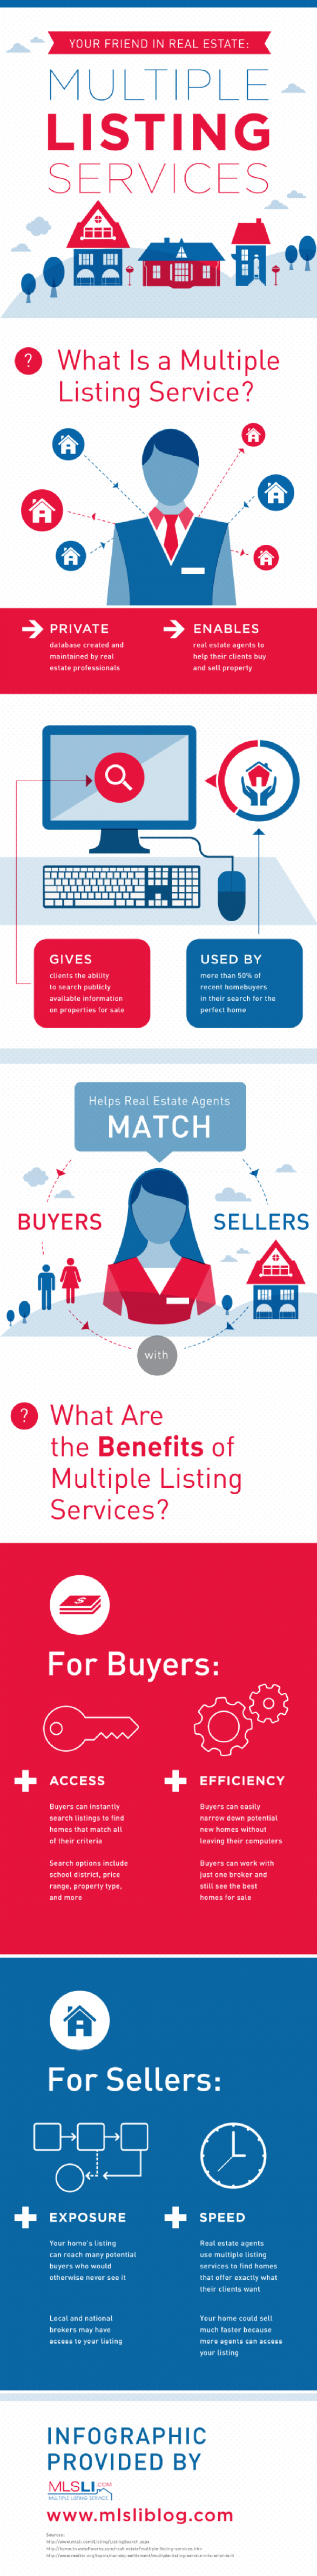 Your Friend in Real Estate: Multiple Listing Services